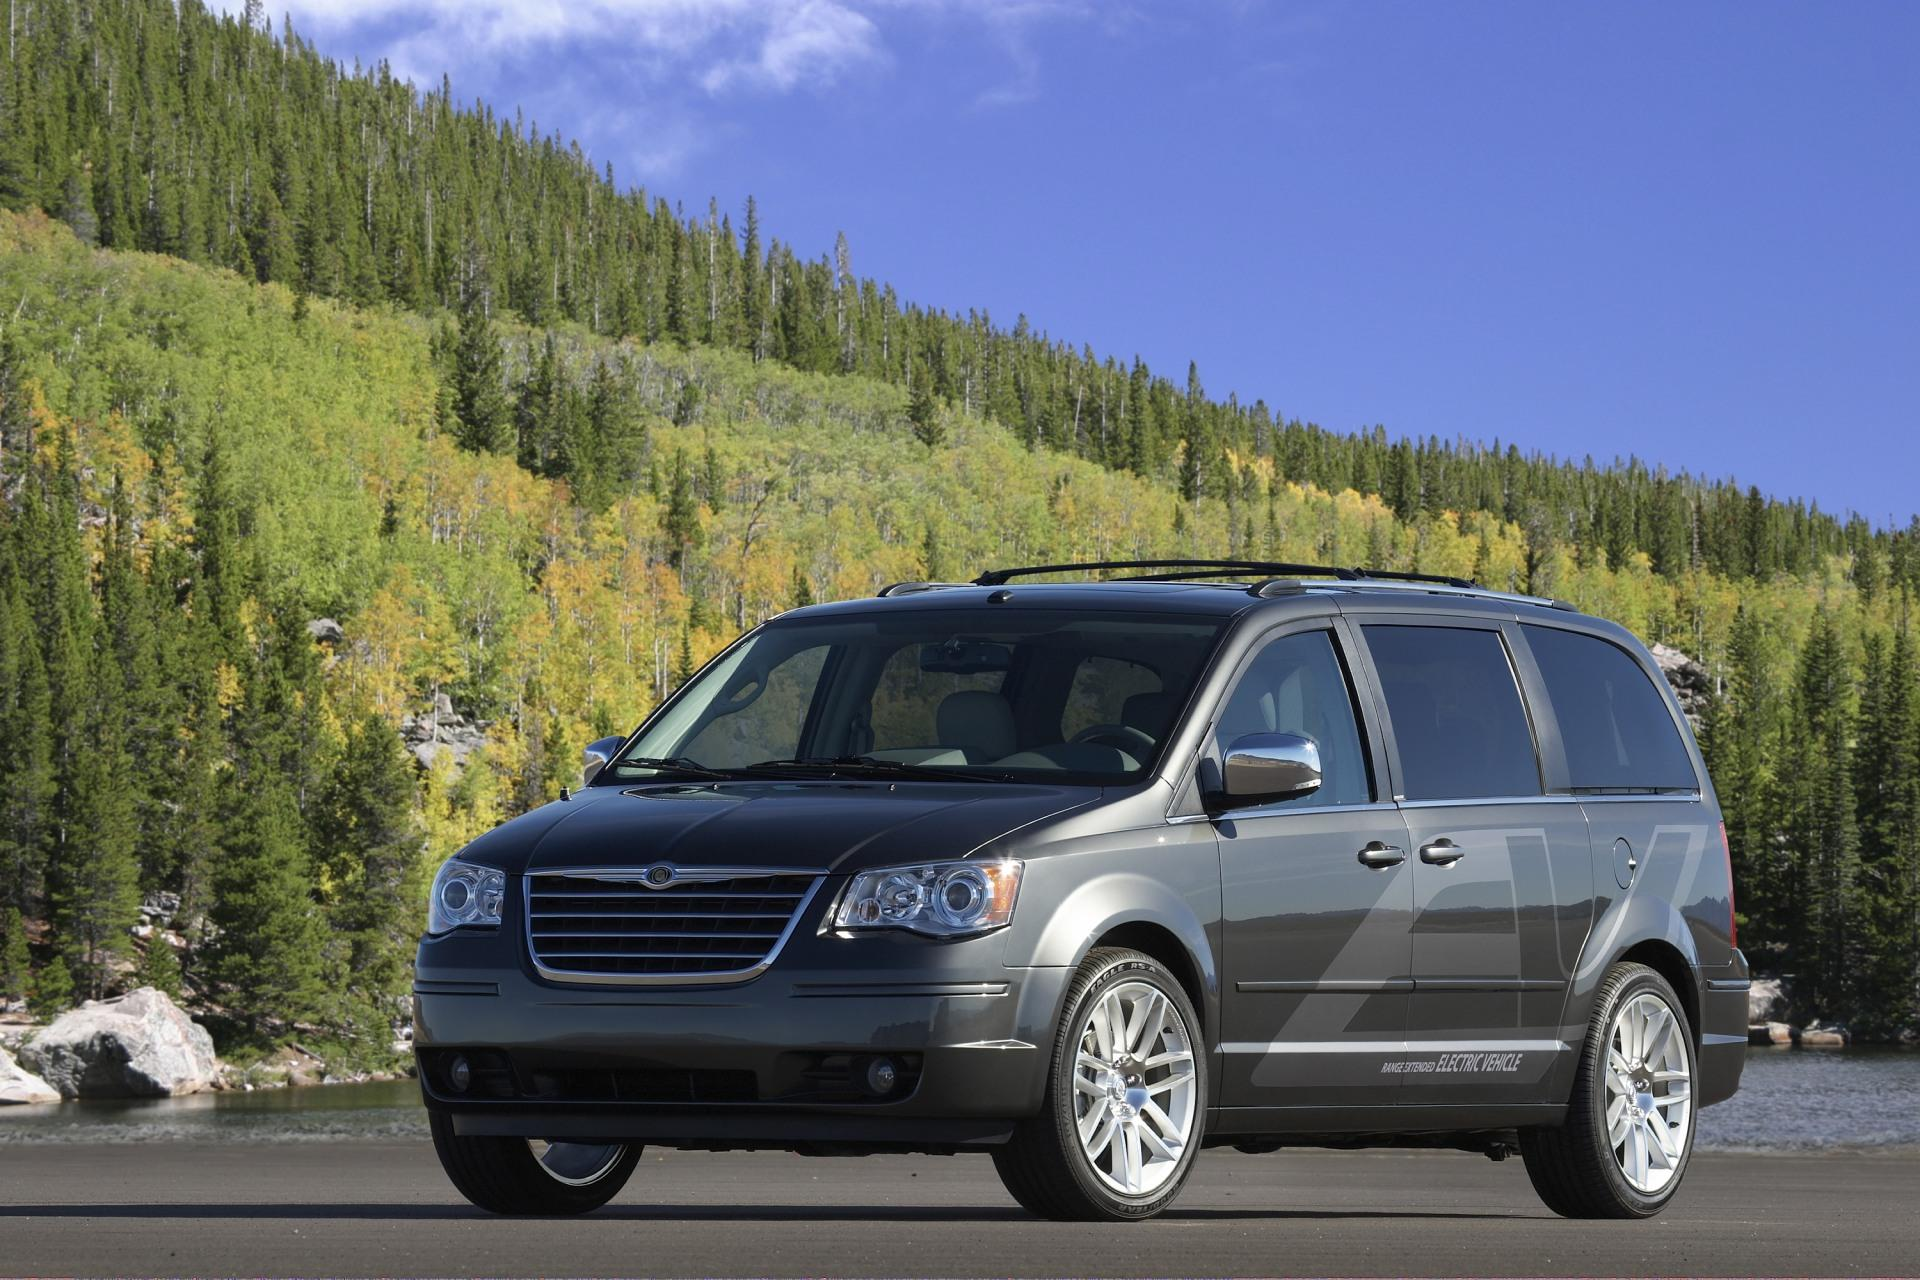 2009 chrysler town country ev. Black Bedroom Furniture Sets. Home Design Ideas